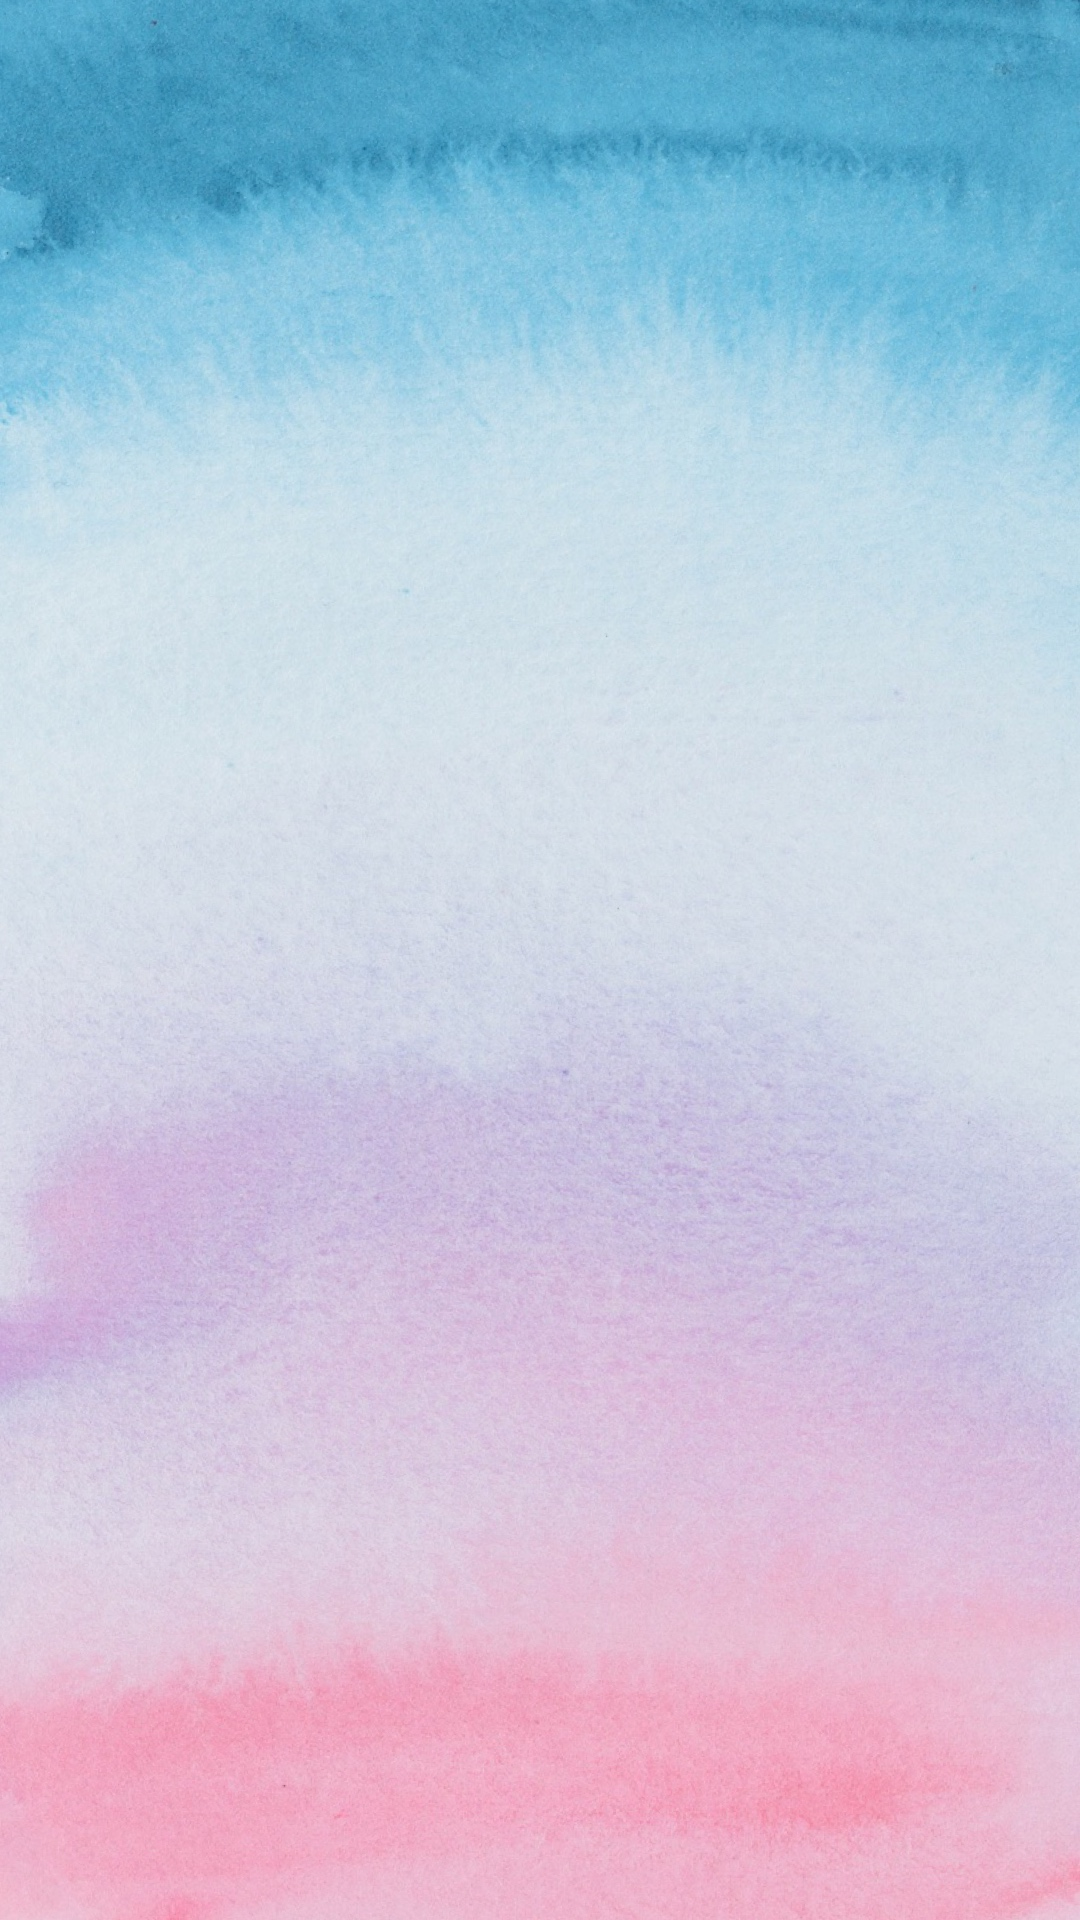 Watercolor Clouds - Phone Wallpapers